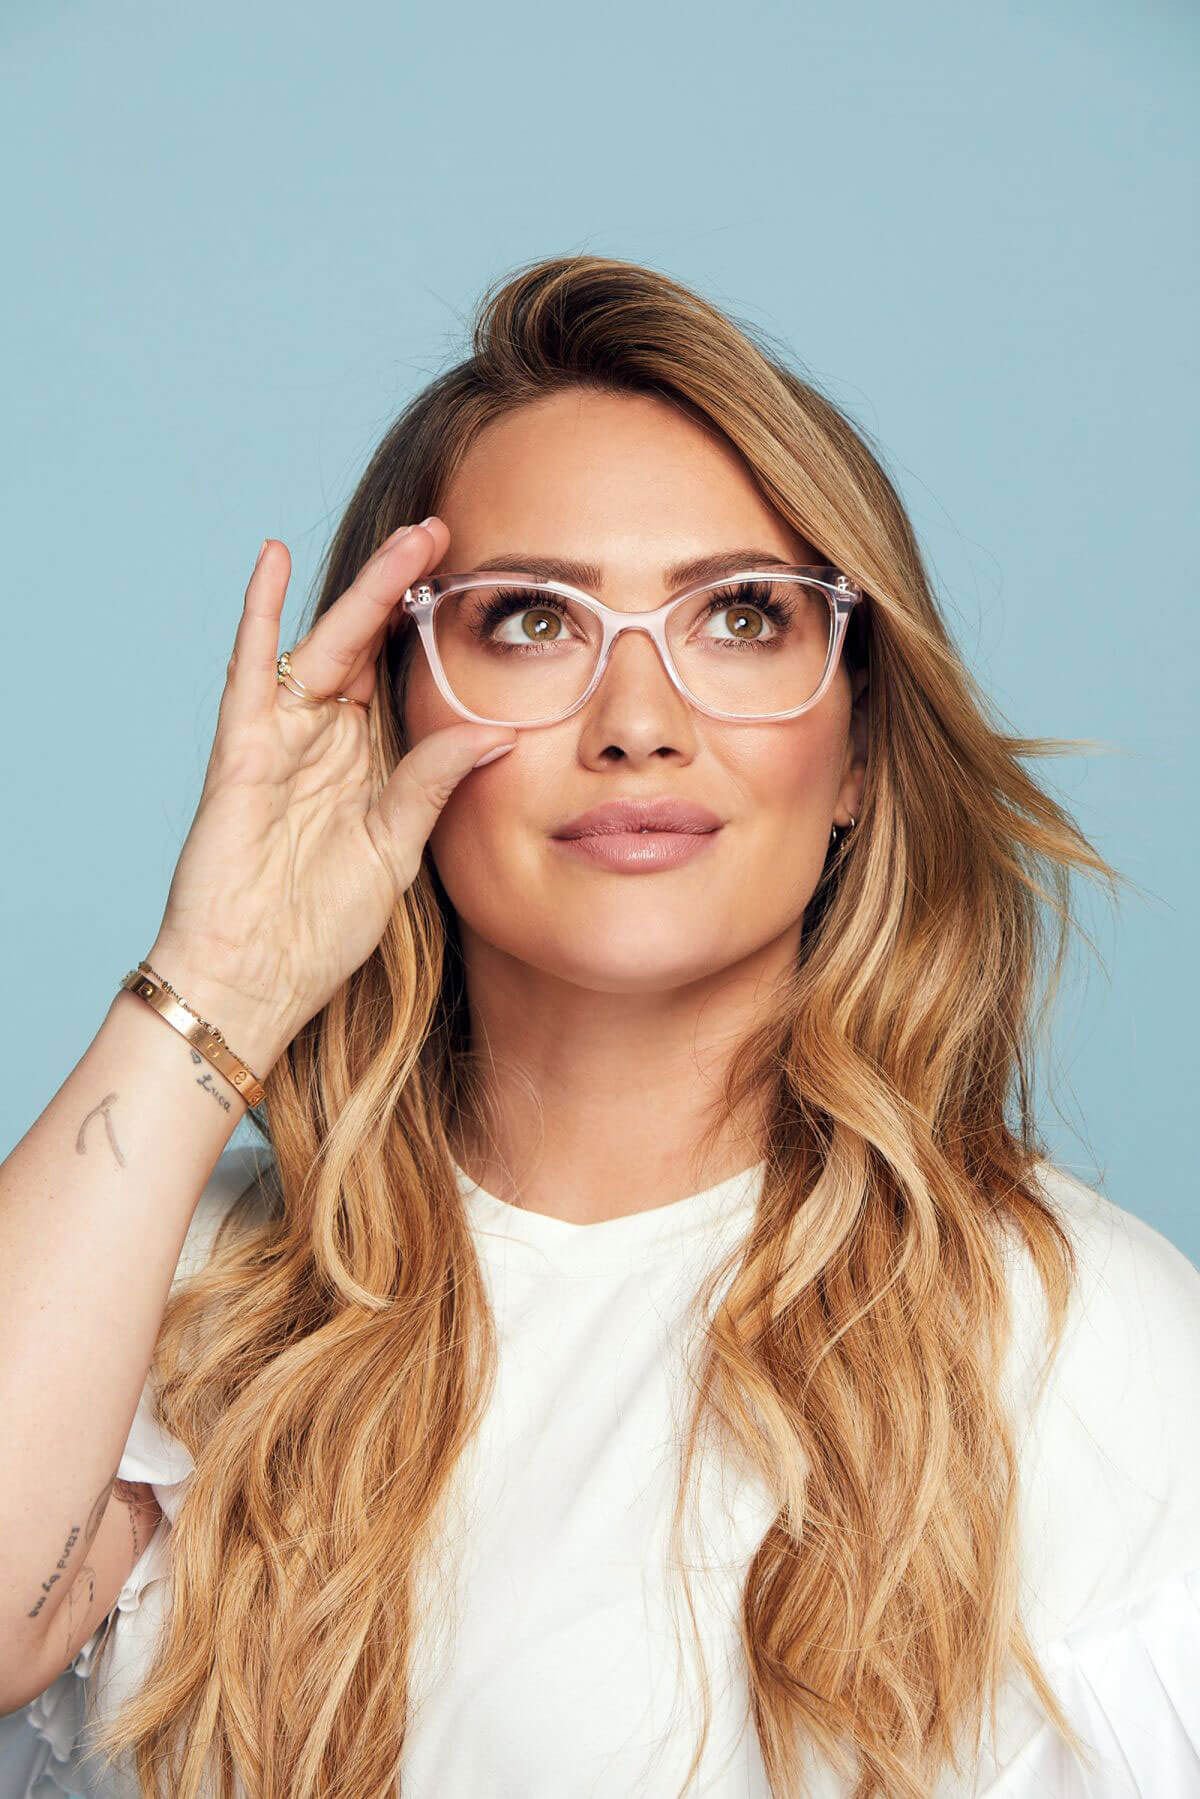 hilary duff poses for hilary duff collection with